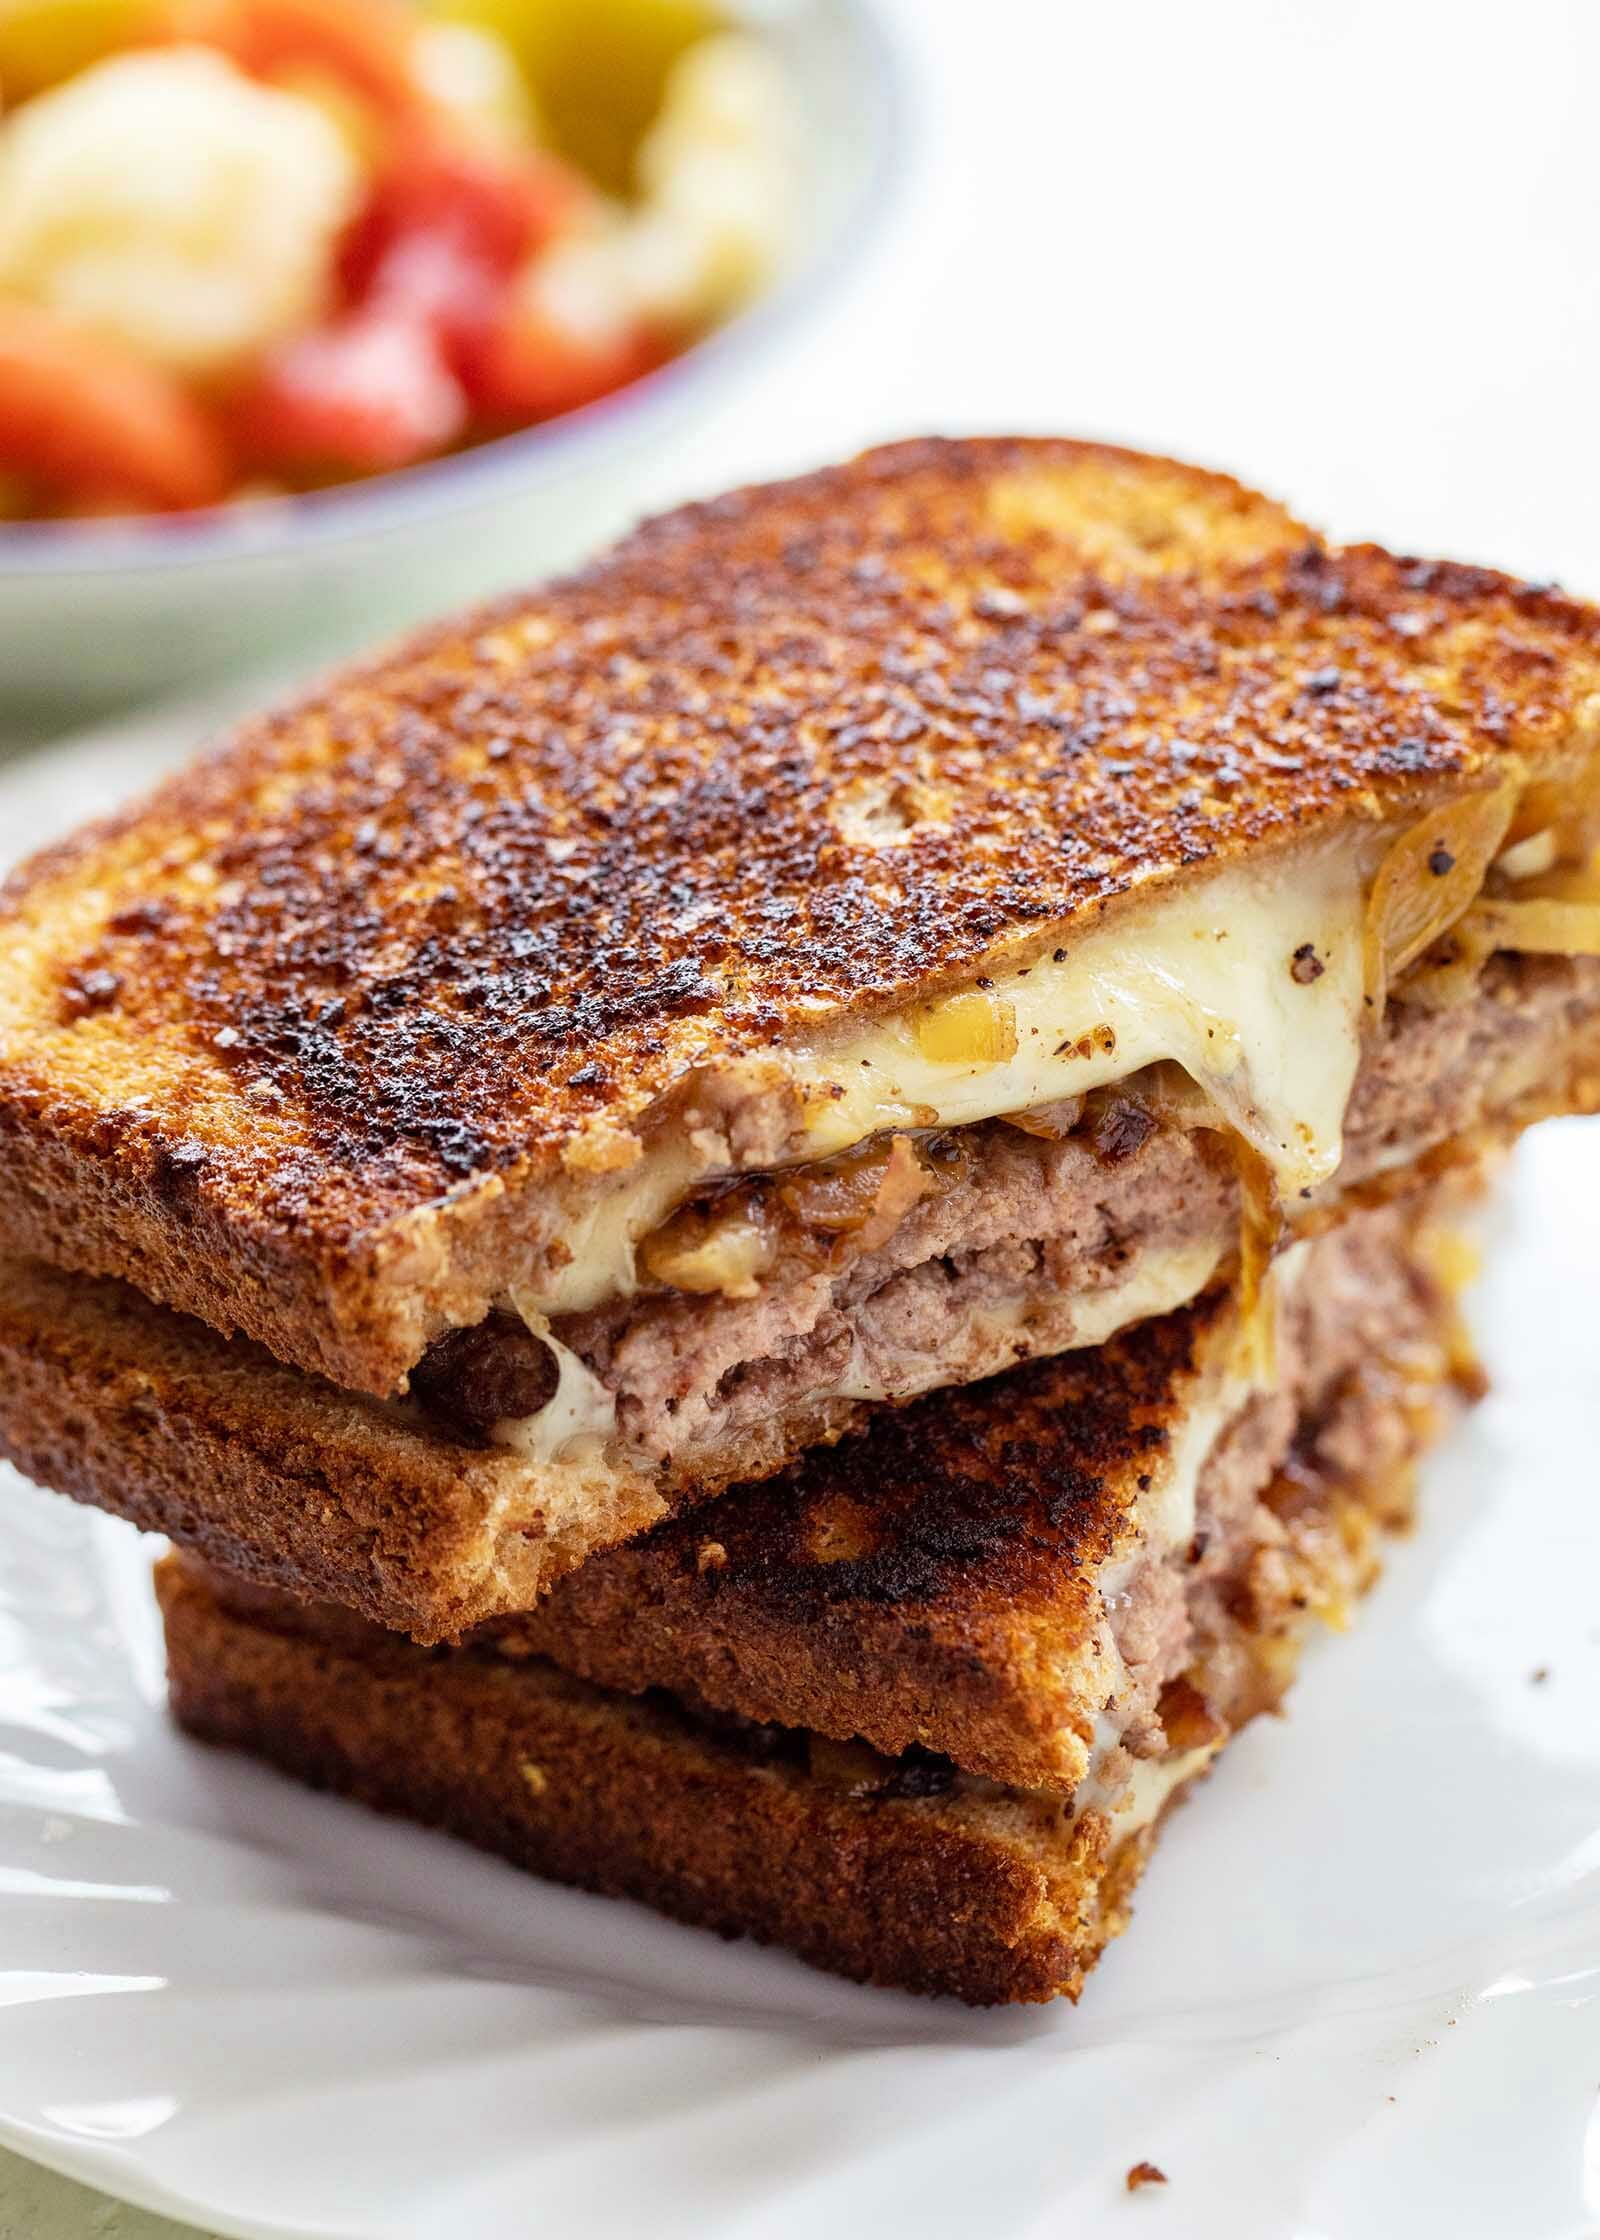 The best patty melt sliced in half and stacked on top of each other. The sandwich is crispy with melted cheese, caramelized onions and beef patties visible.